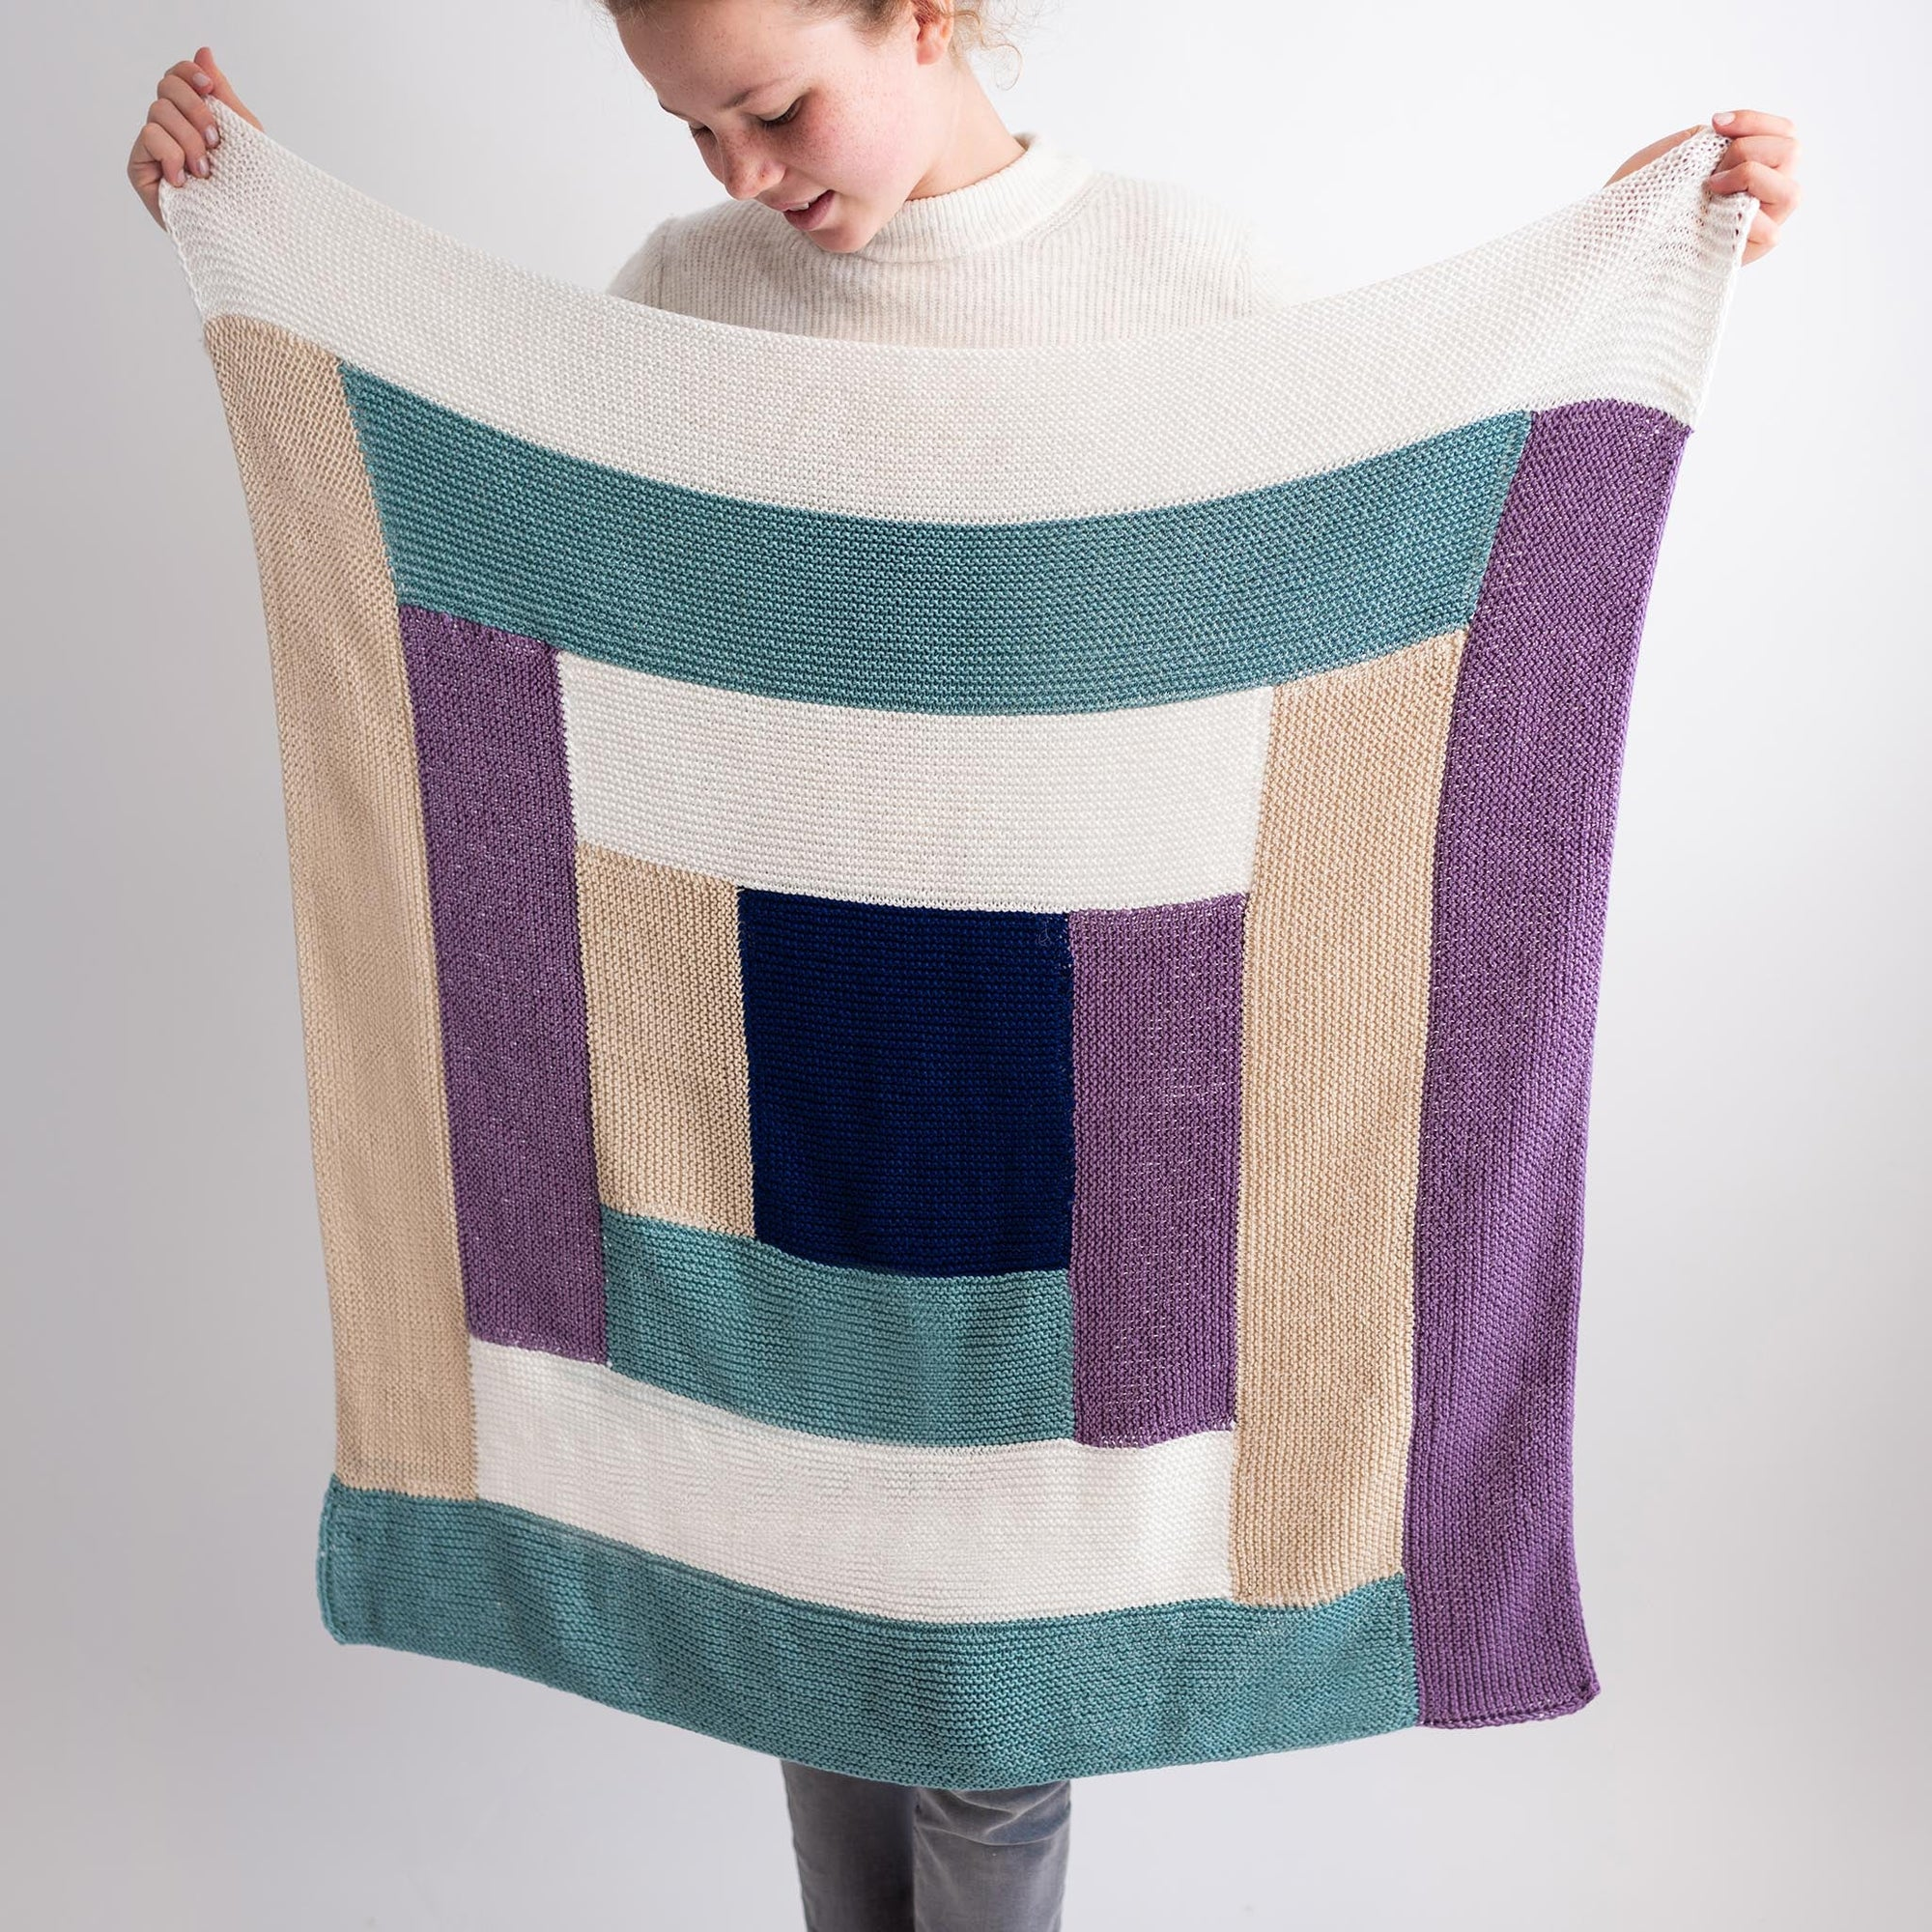 Maze Blanket PDF Pattern & Yarn Bundle